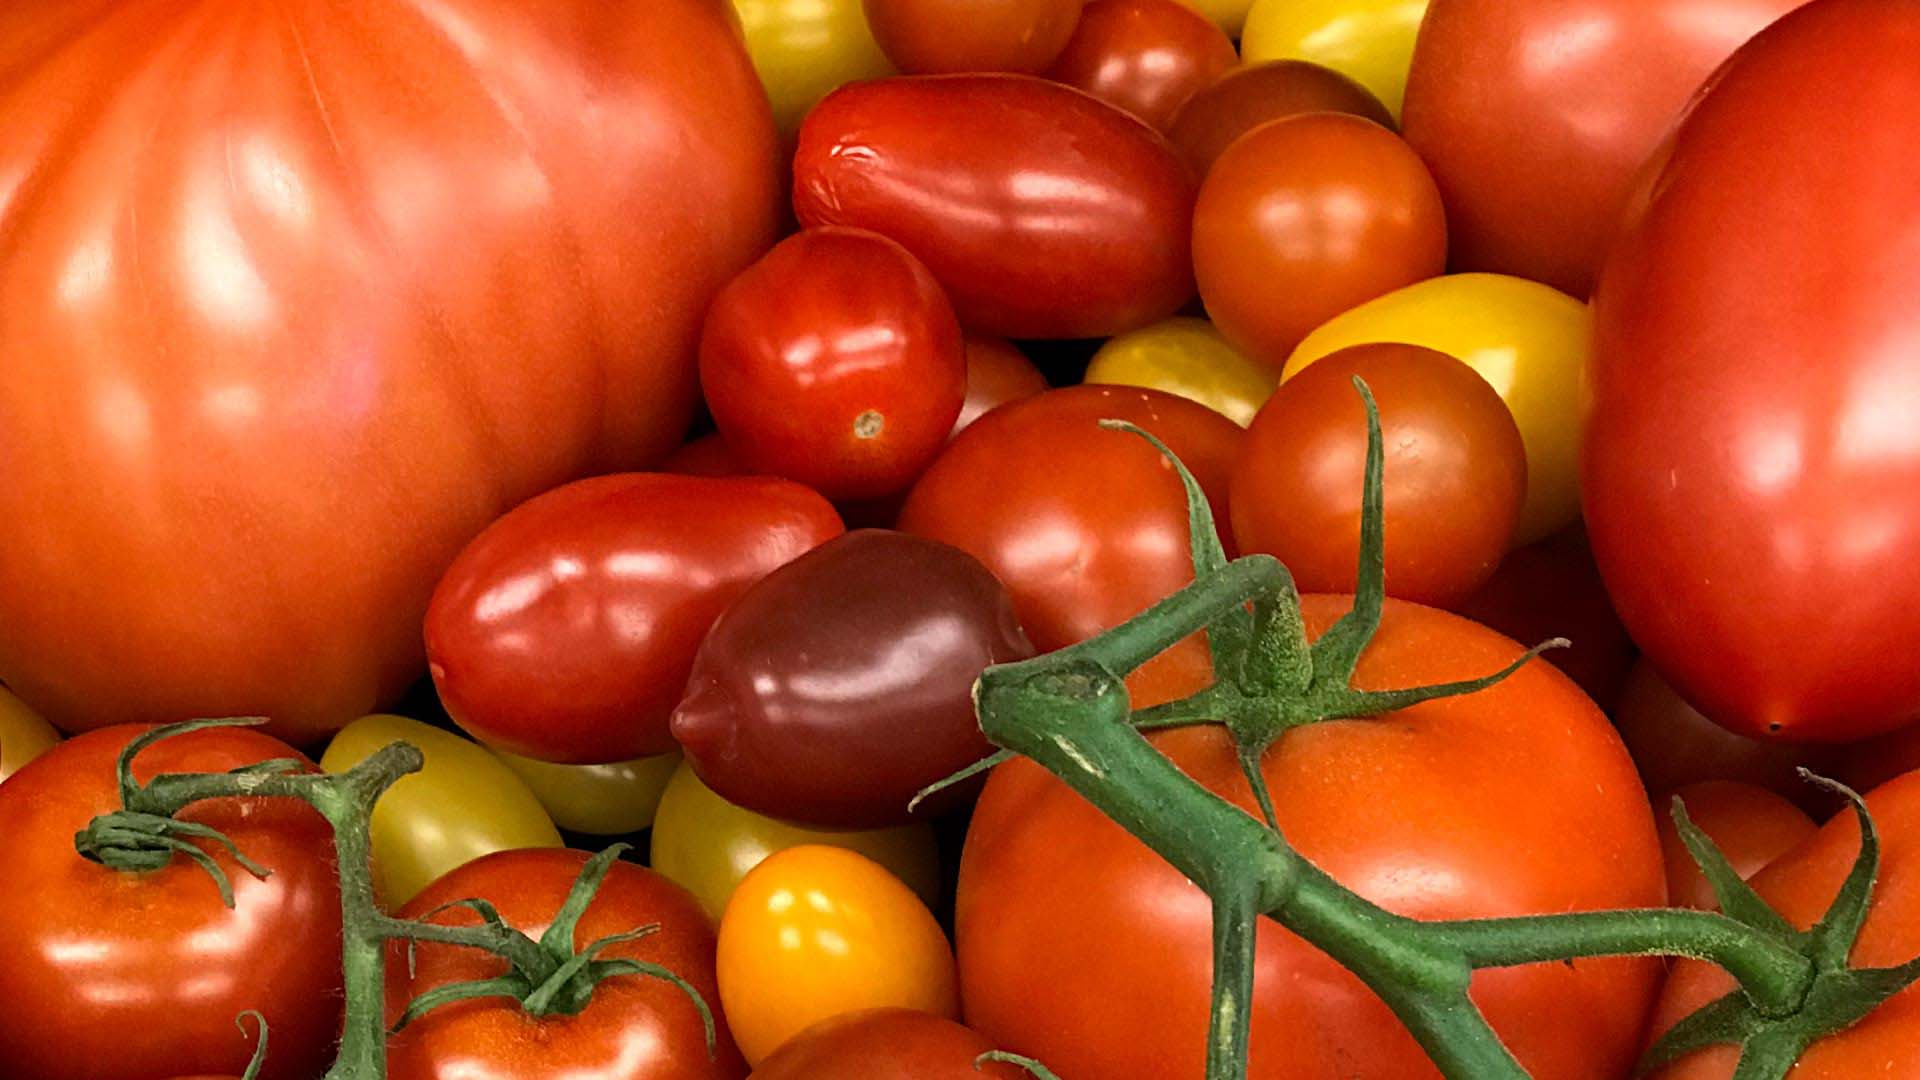 photo of various tomatoes from Lippman's lab